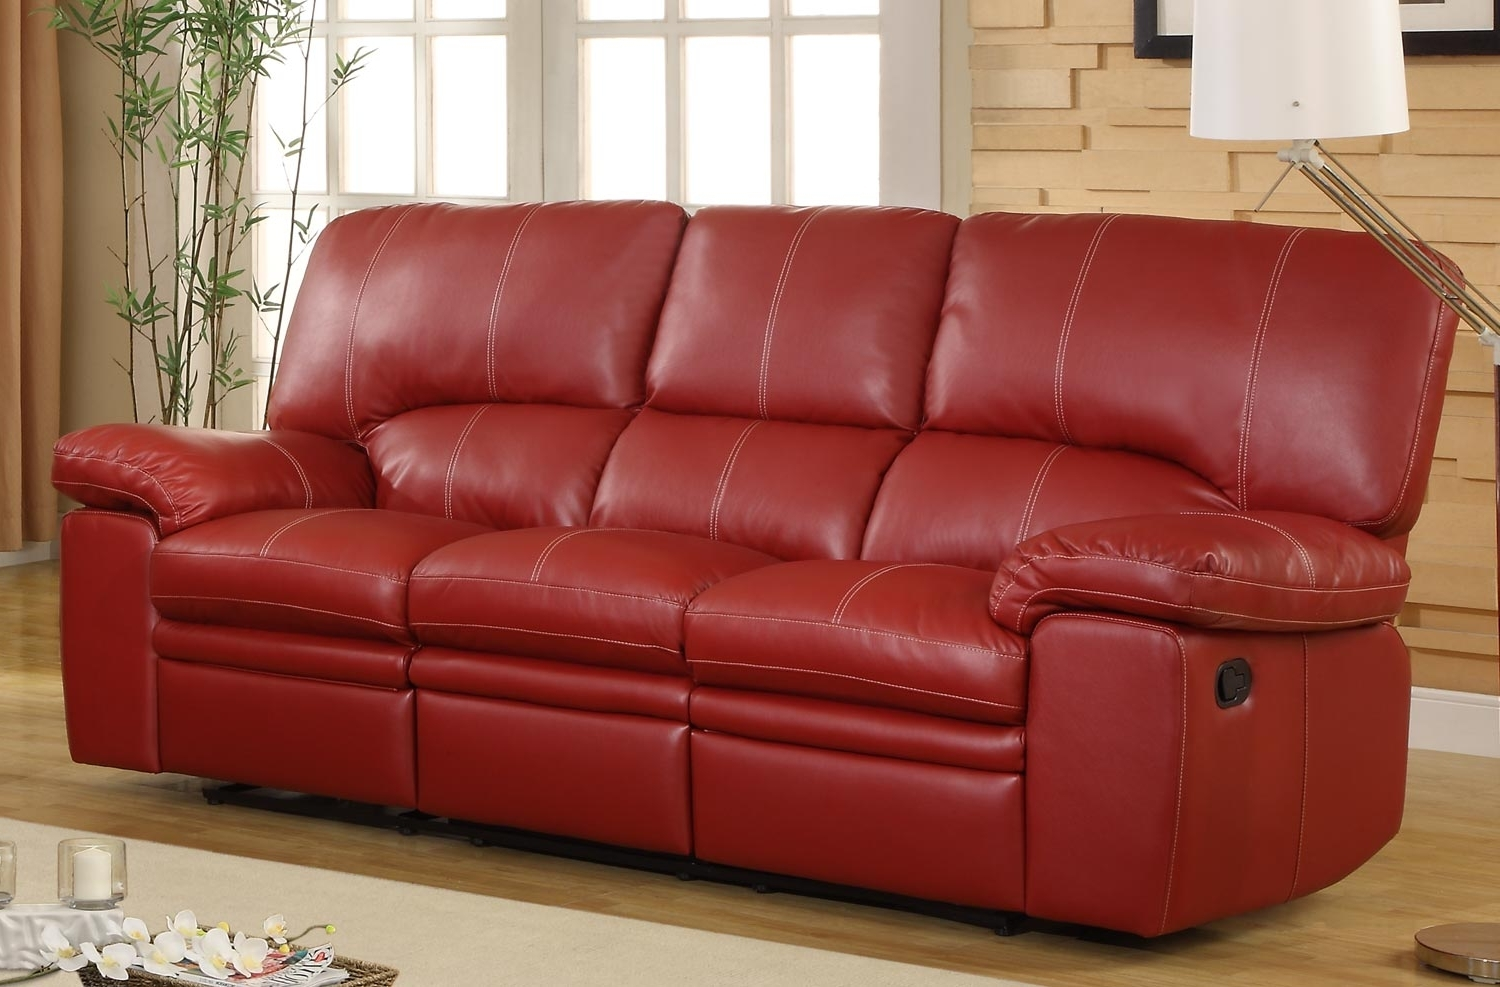 Most Recently Released Red Leather Sectional Sofas With Recliners Regarding Homelegance Kendrick Double Recliner Sofa – Red – Bonded Leather (View 5 of 15)